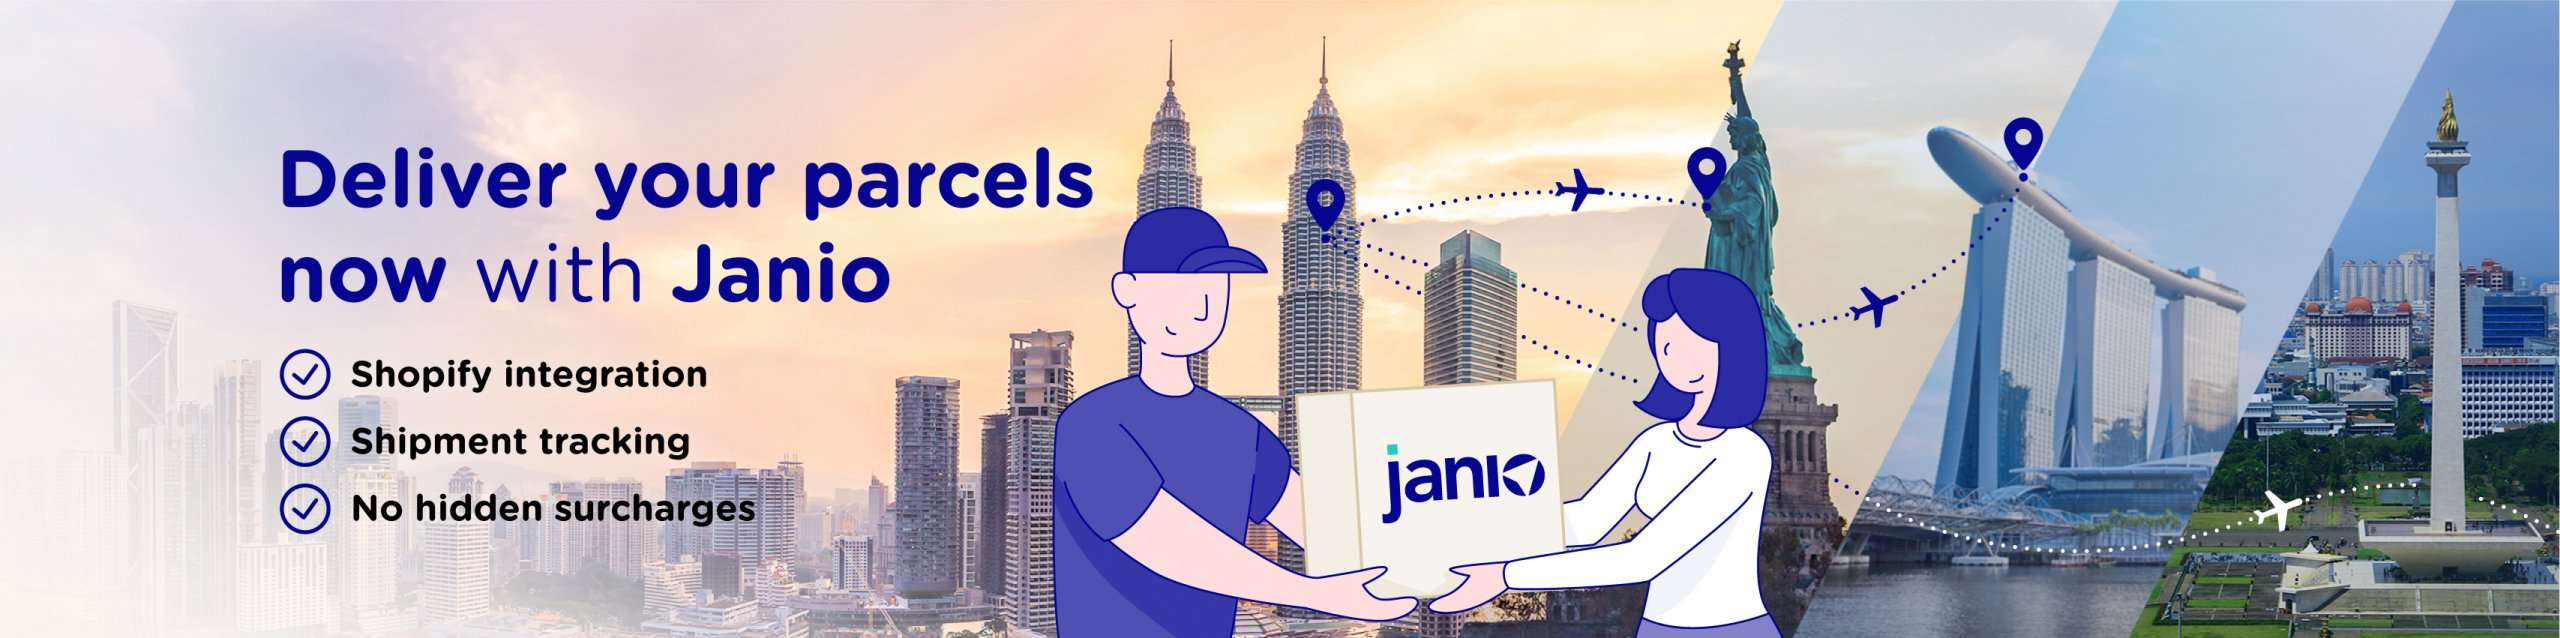 Deliver parcels with Janio